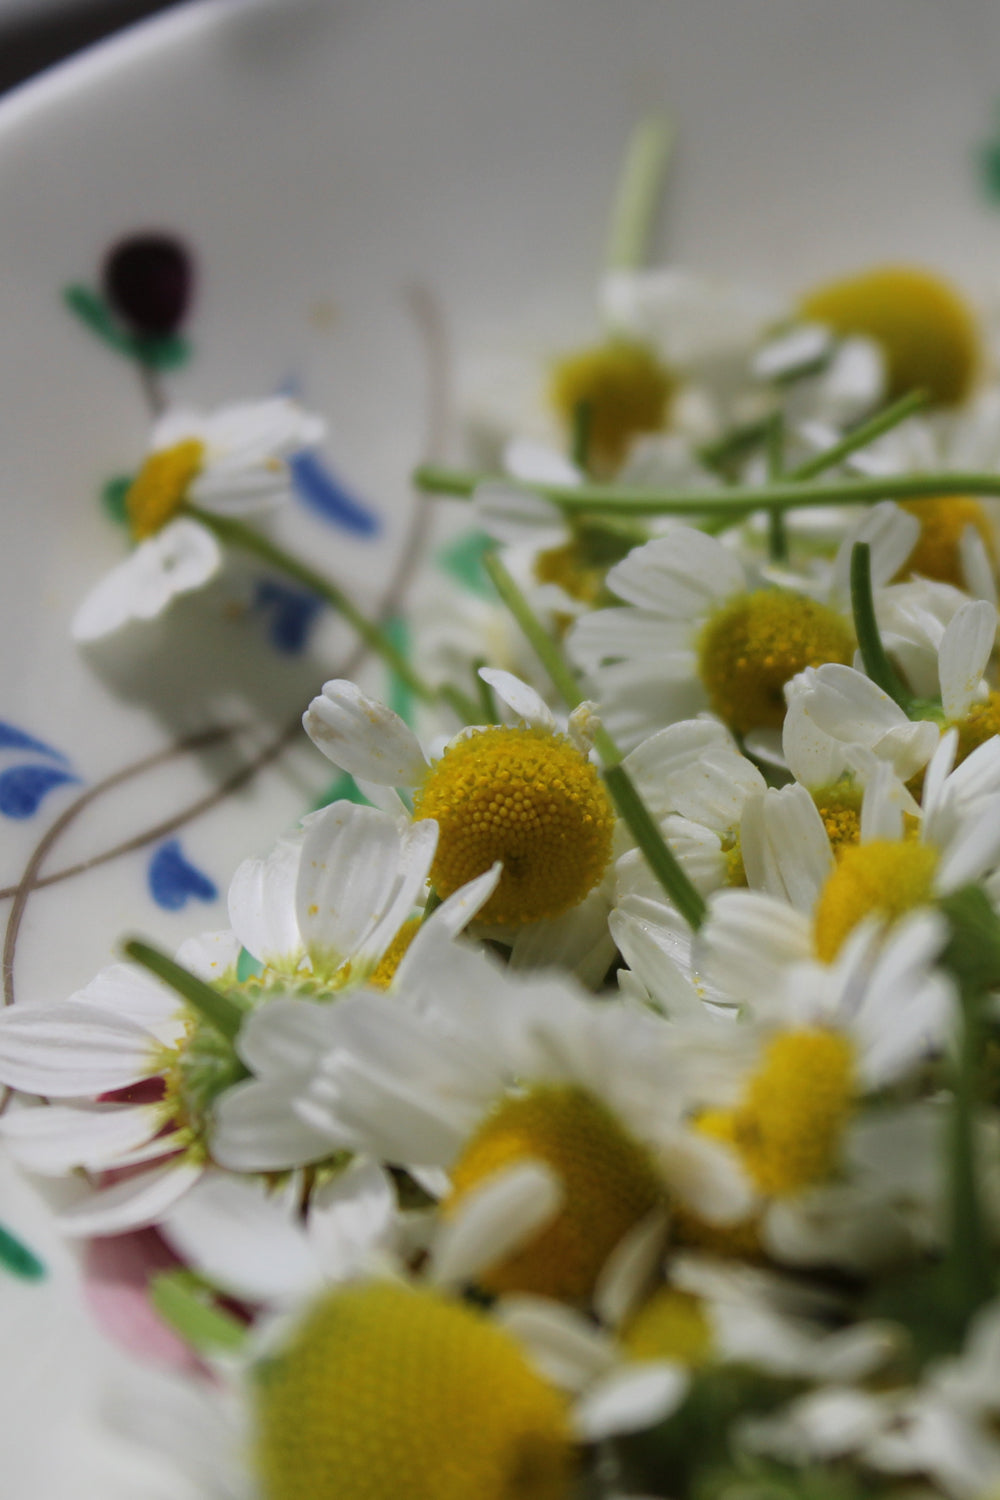 fresh chamomile flower blossoms